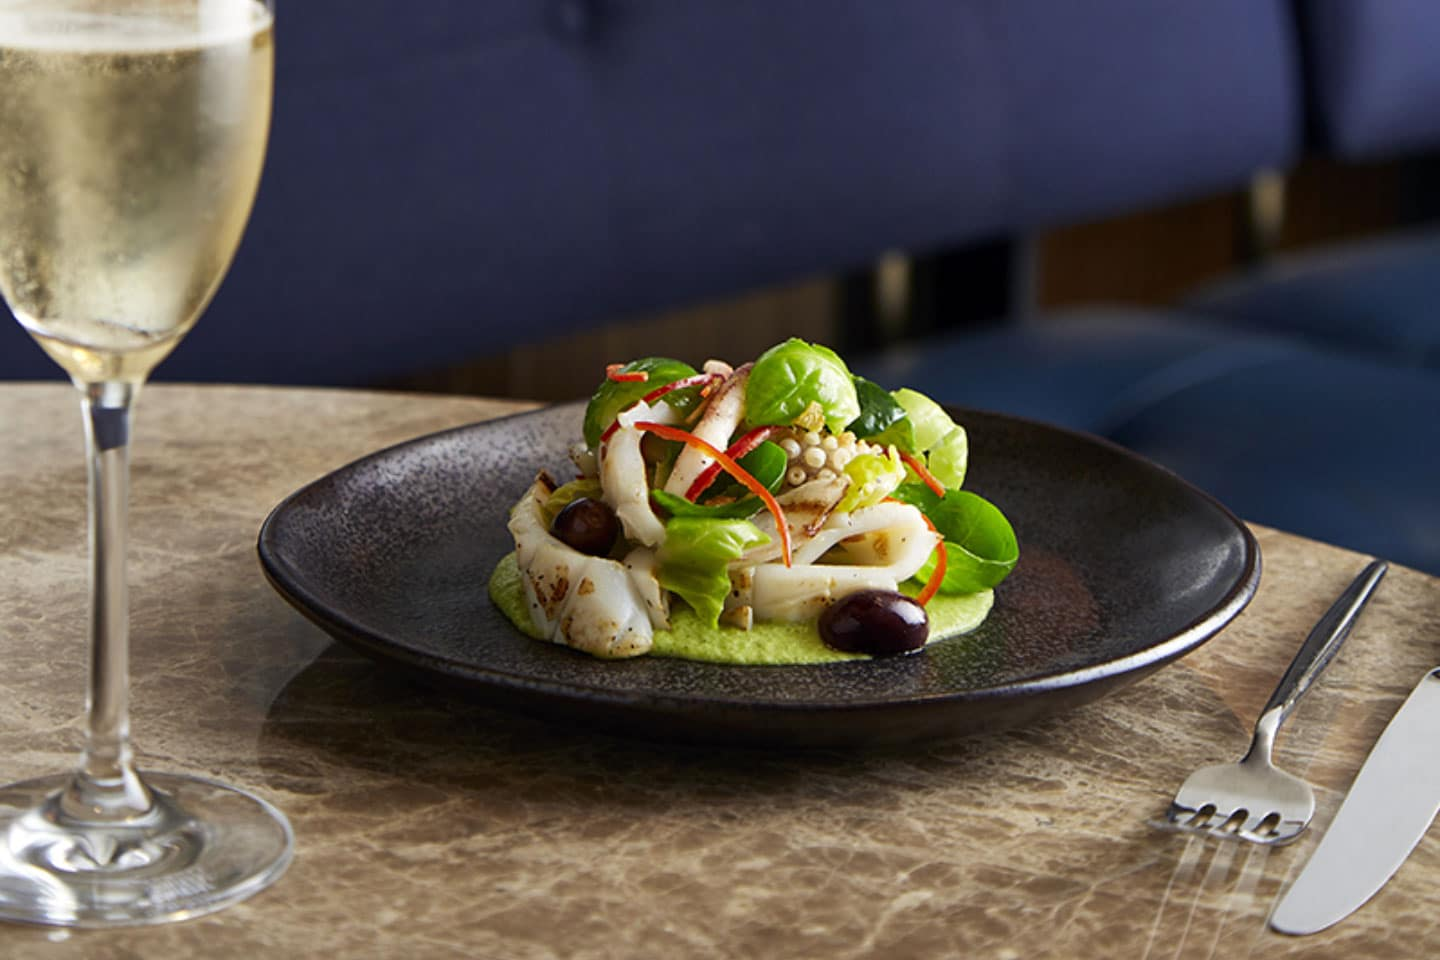 Mode Kitchen & Bar - Grilled SA calamari salad, brussels sprouts, lemon and chilli